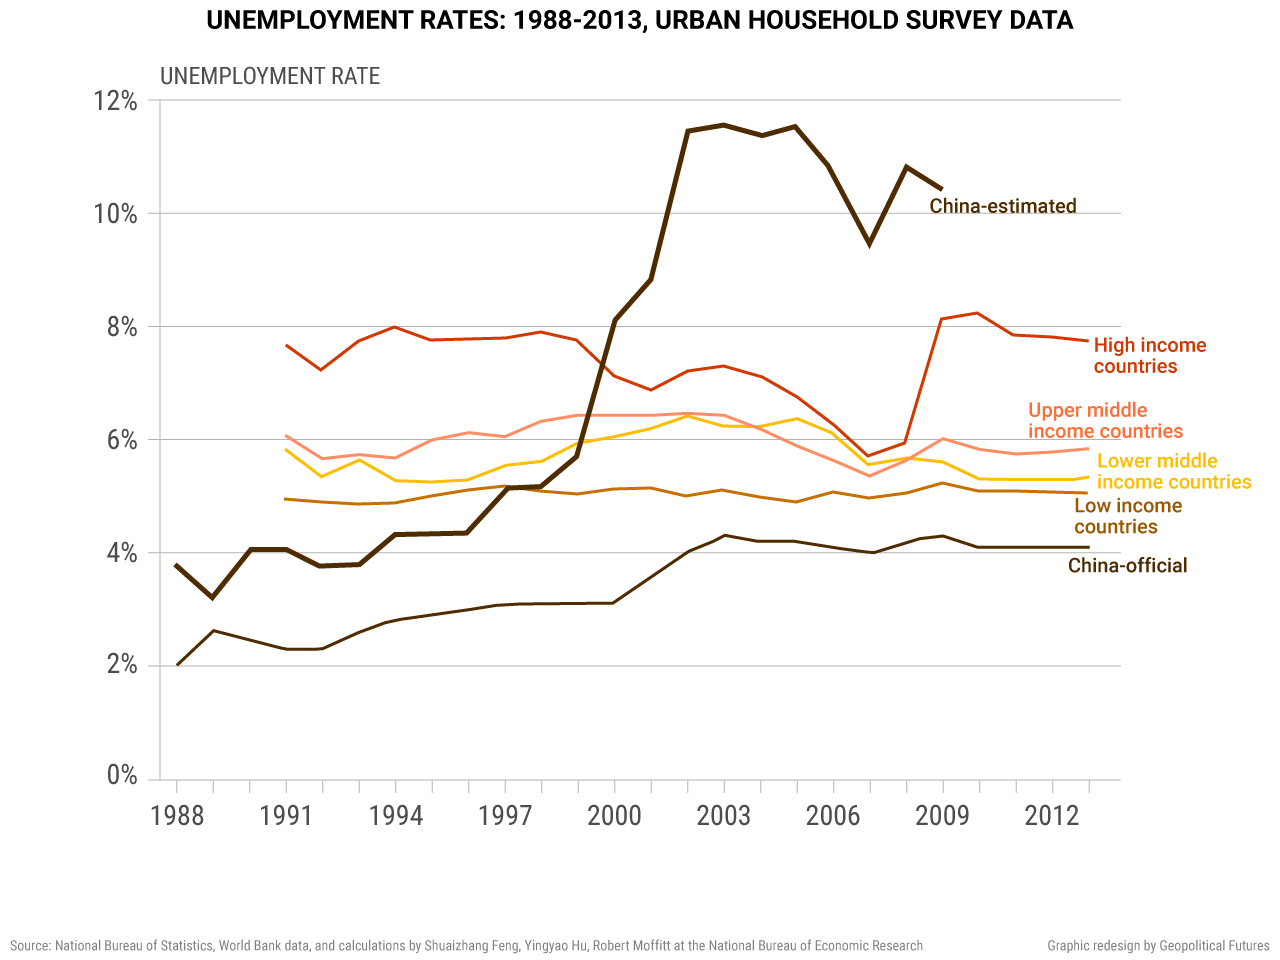 unemployment-rates-by-country-1988-2013-urban-household-survey-data